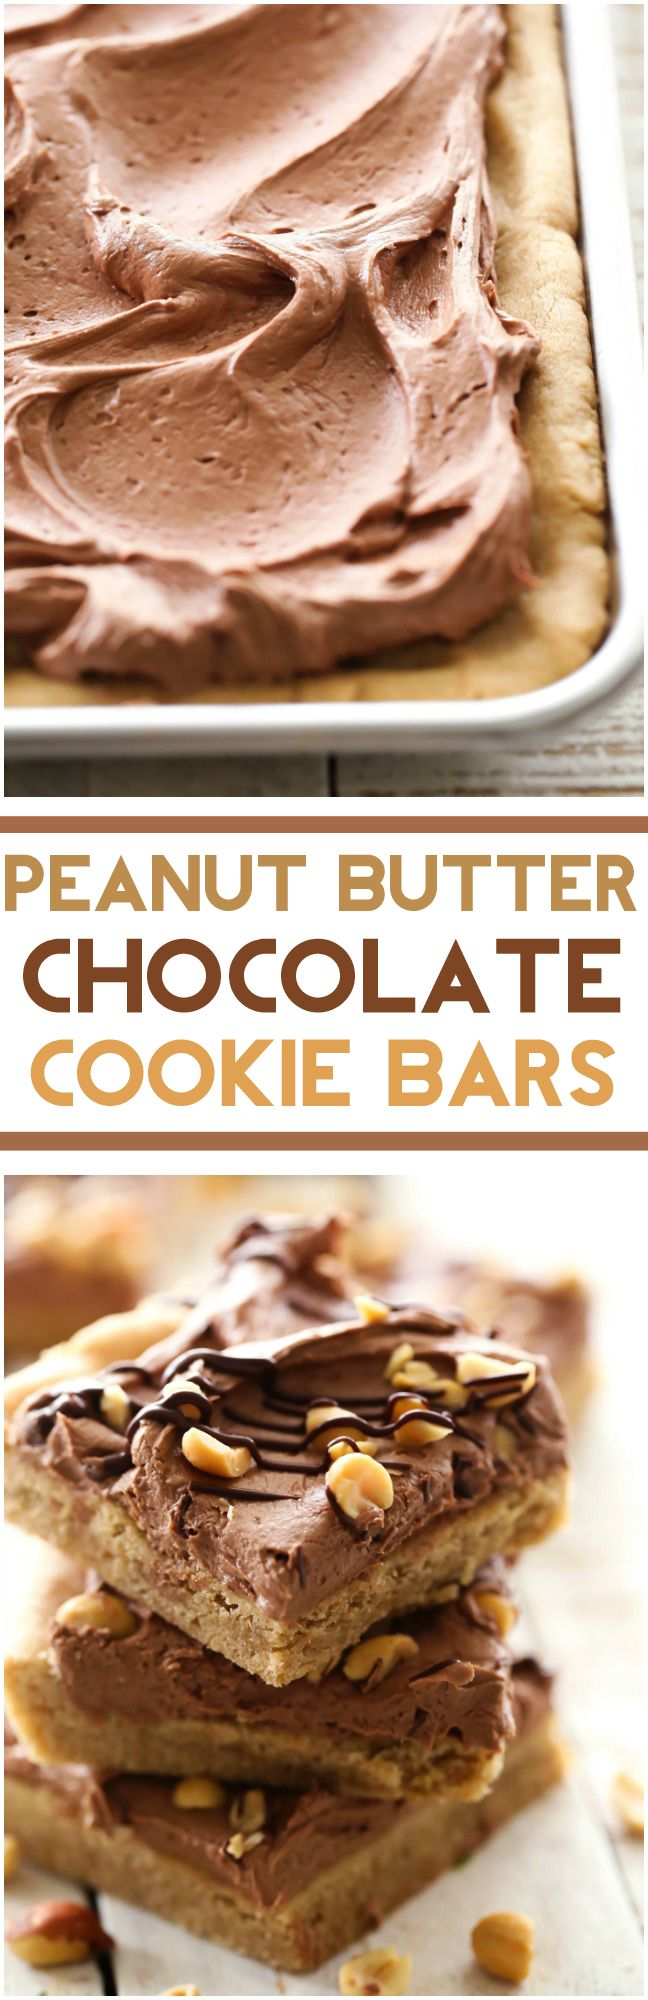 Peanut Butter Chocolate Cookie Bars... This is a peanut butter-chocolate lovers heaven! The cookie bars are cooked to perfection and this frosting recipe is INCREDIBLE!